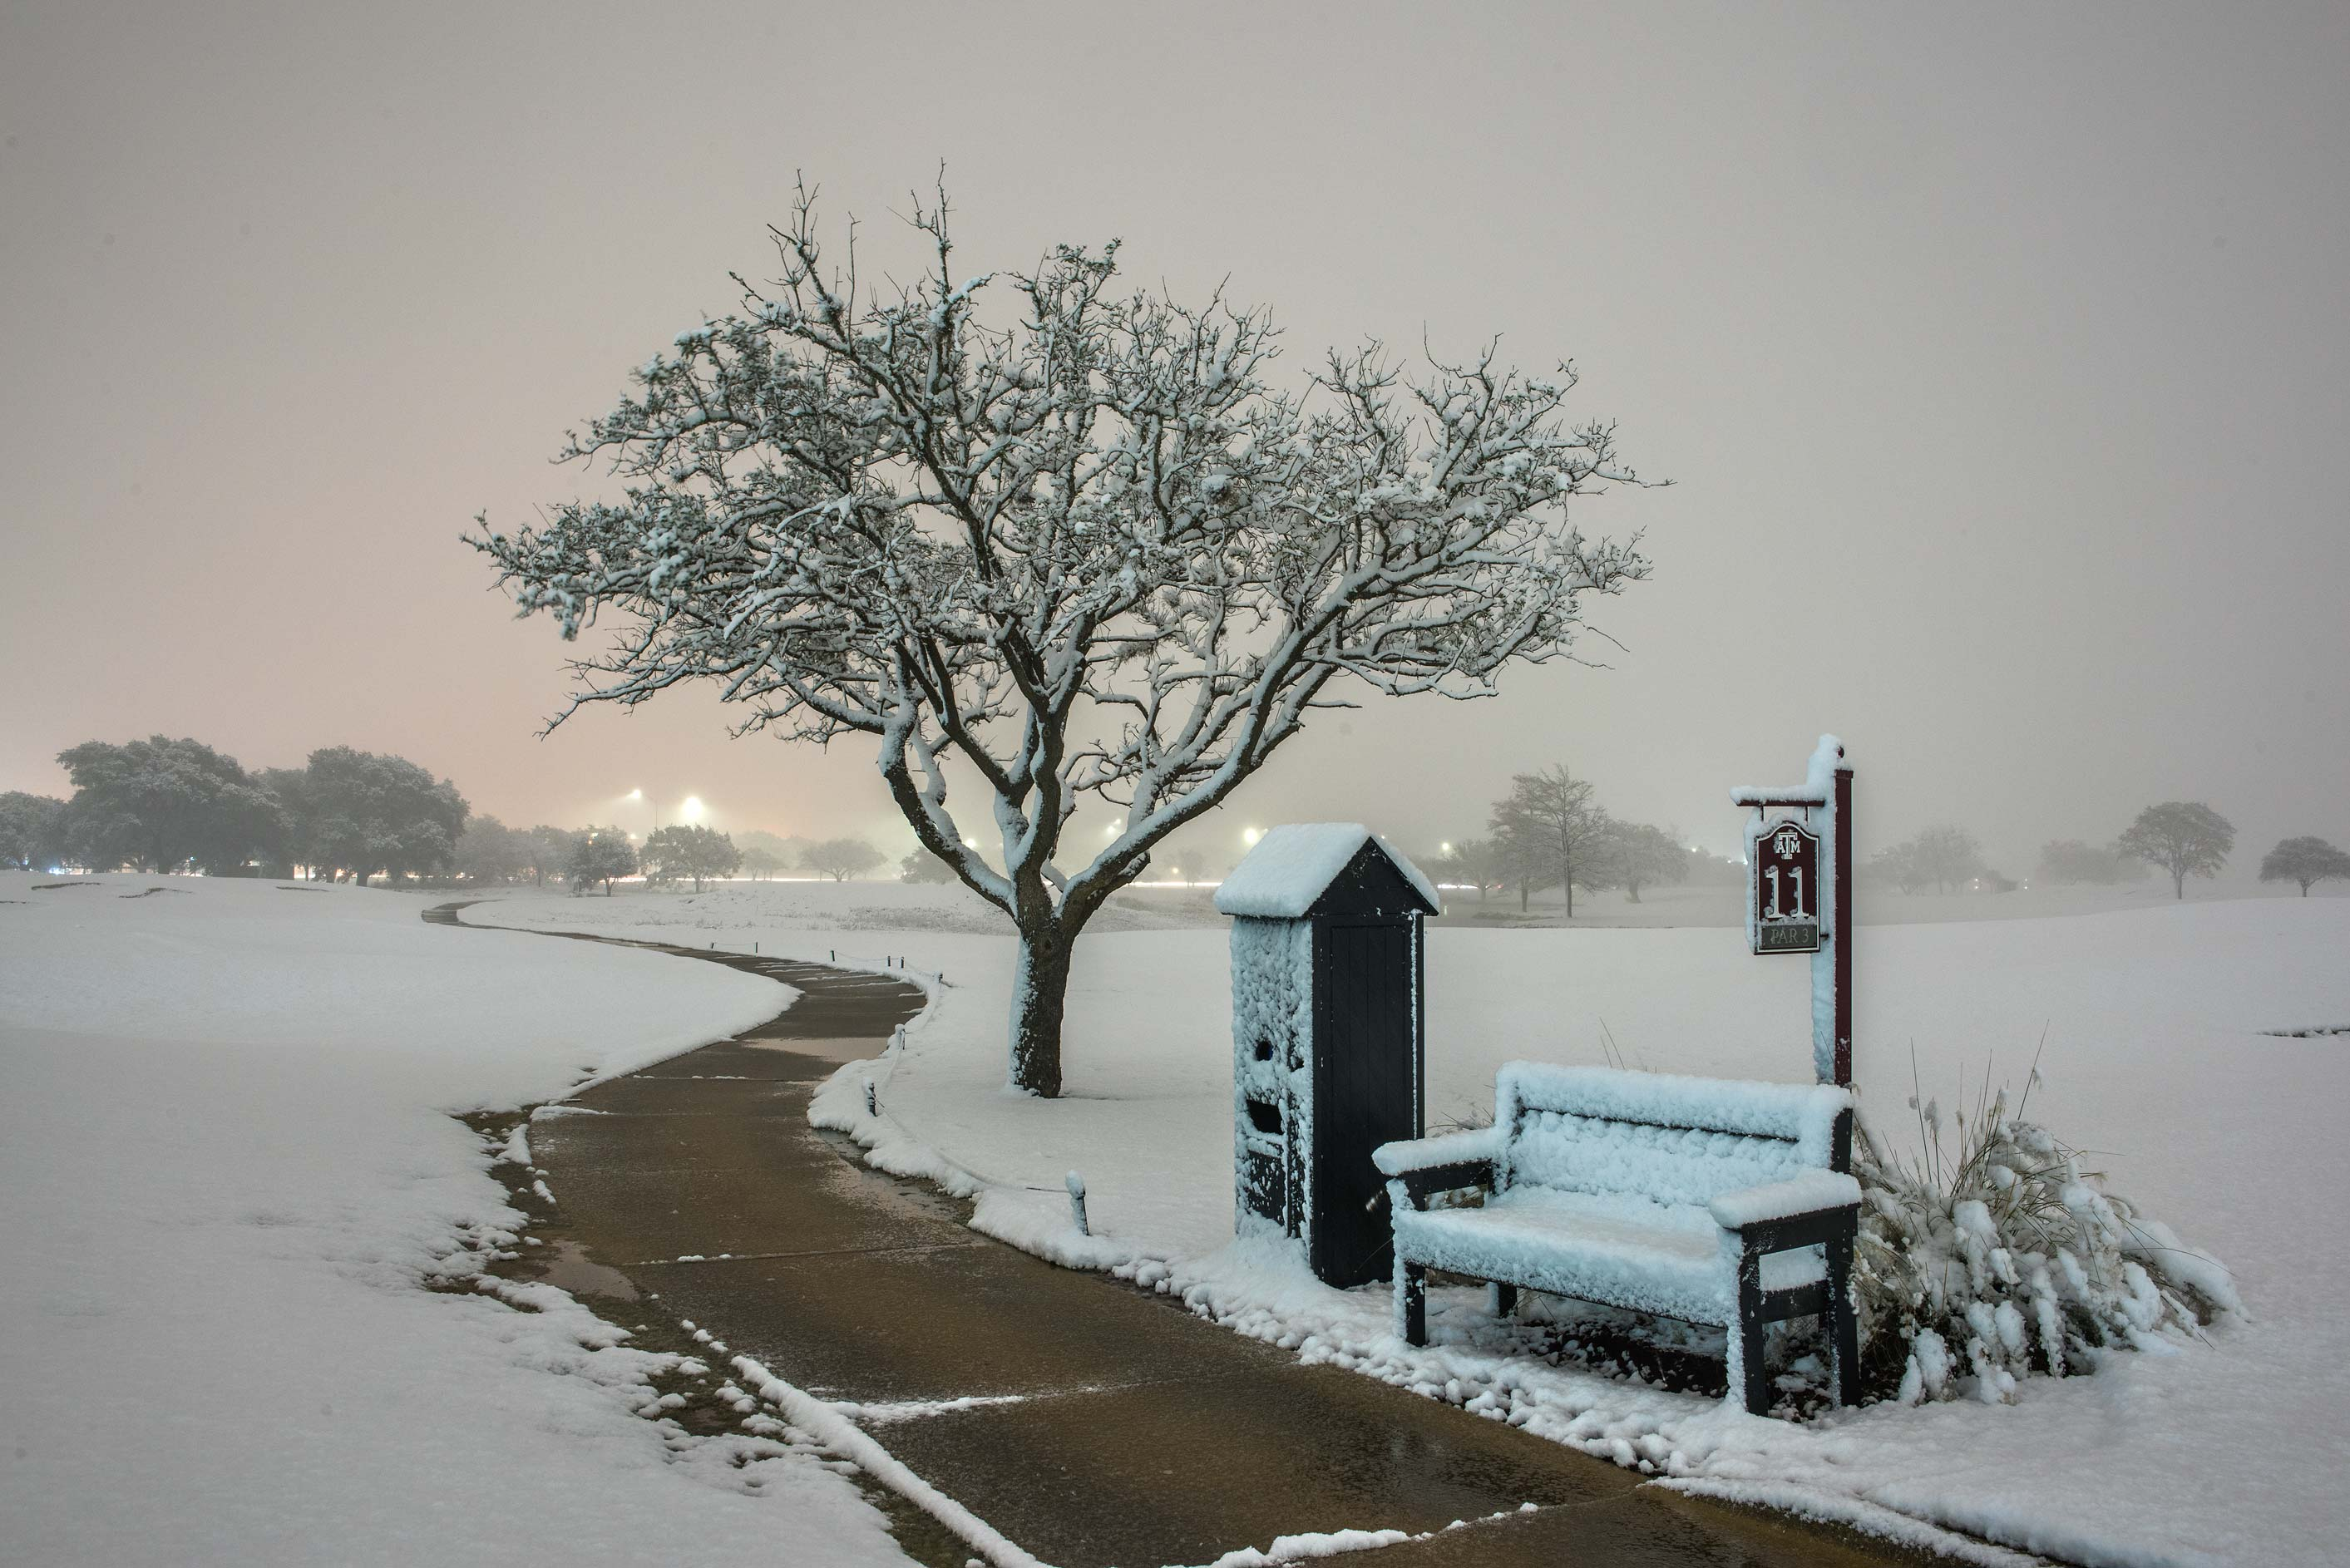 11 Par 3 bench with snow on the university golf course. College Station, Texas